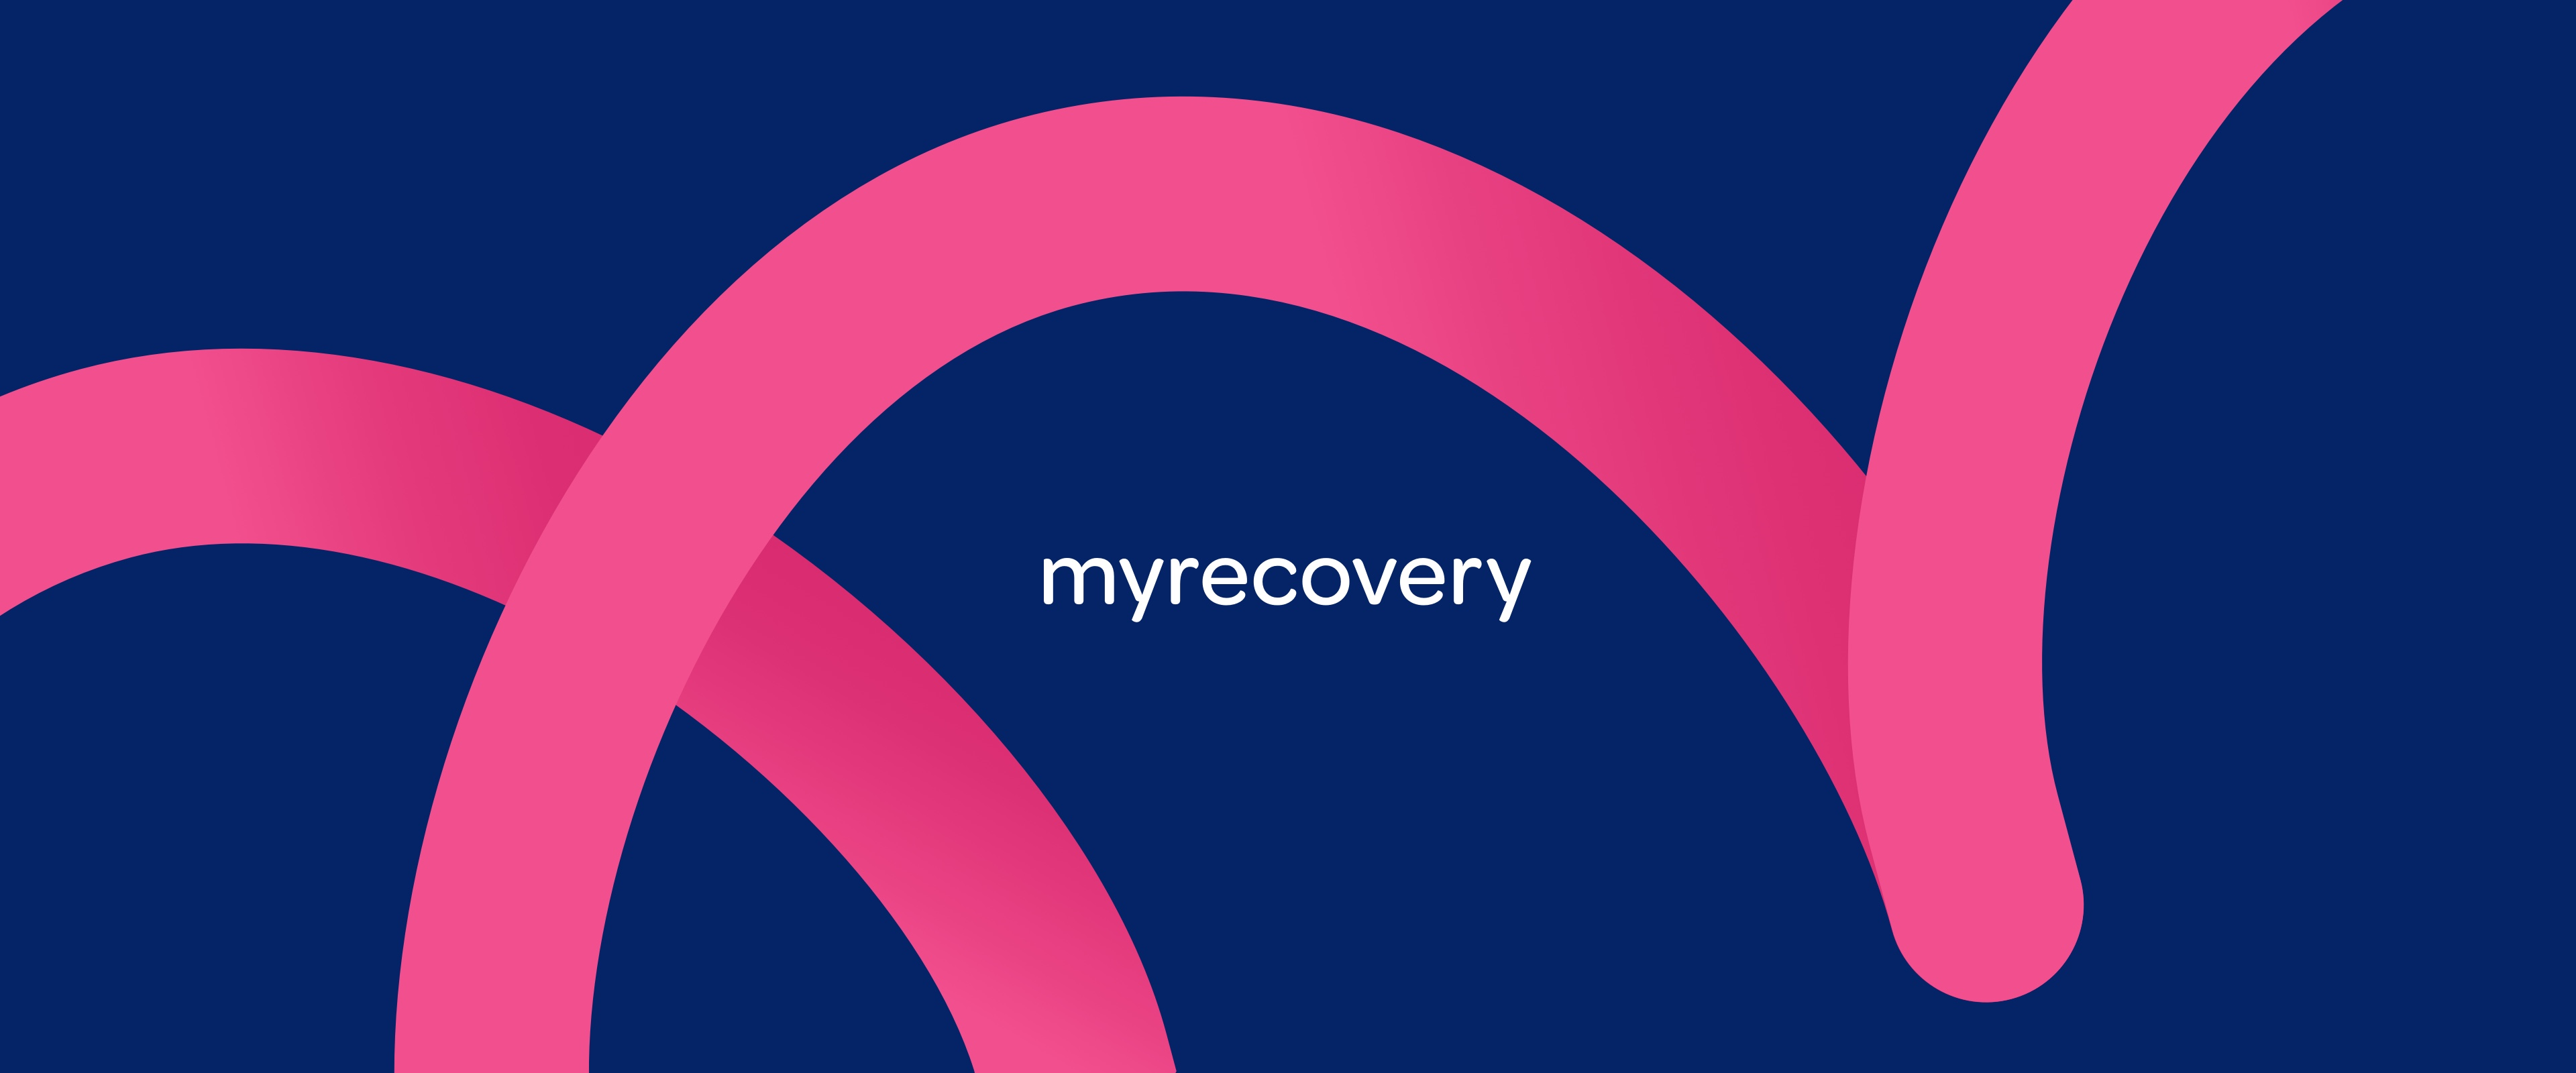 Philip_Mawer_myrecovery_Header